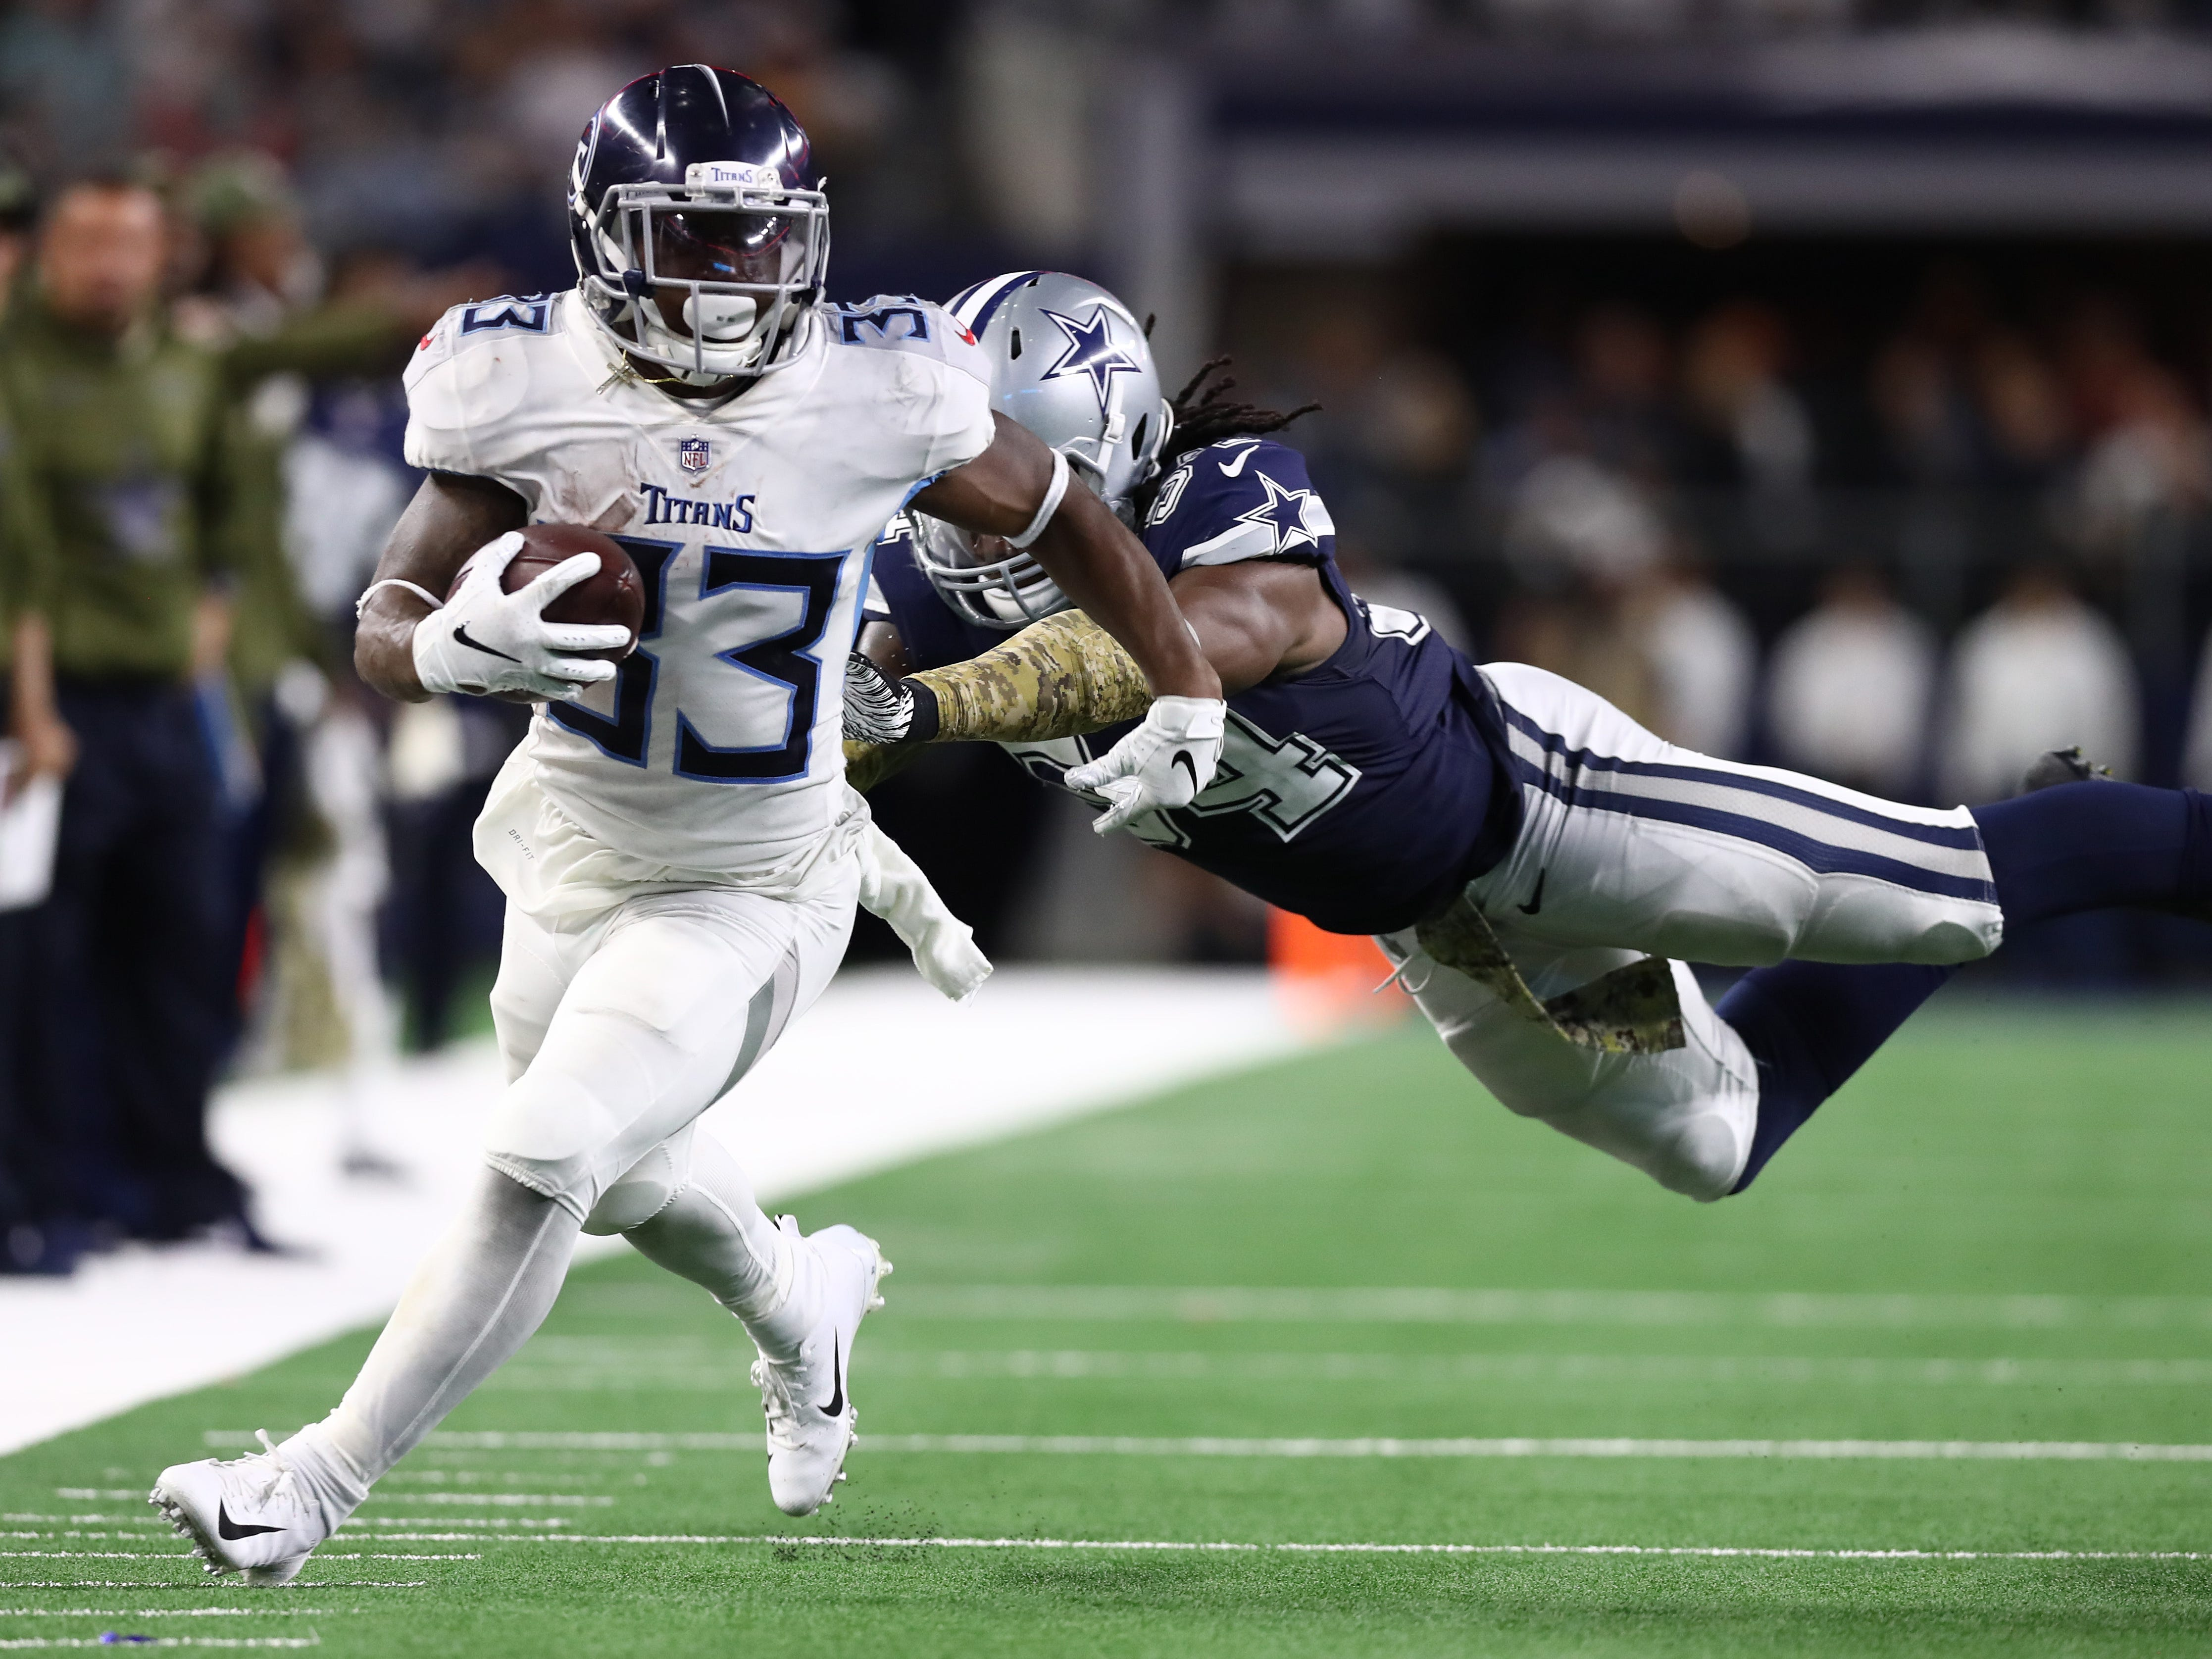 Tennessee Titans running back Dion Lewis (33) runs with the ball against Dallas Cowboys linebacker Jaylon Smith (54) in the fourth quarter at AT&T Stadium.